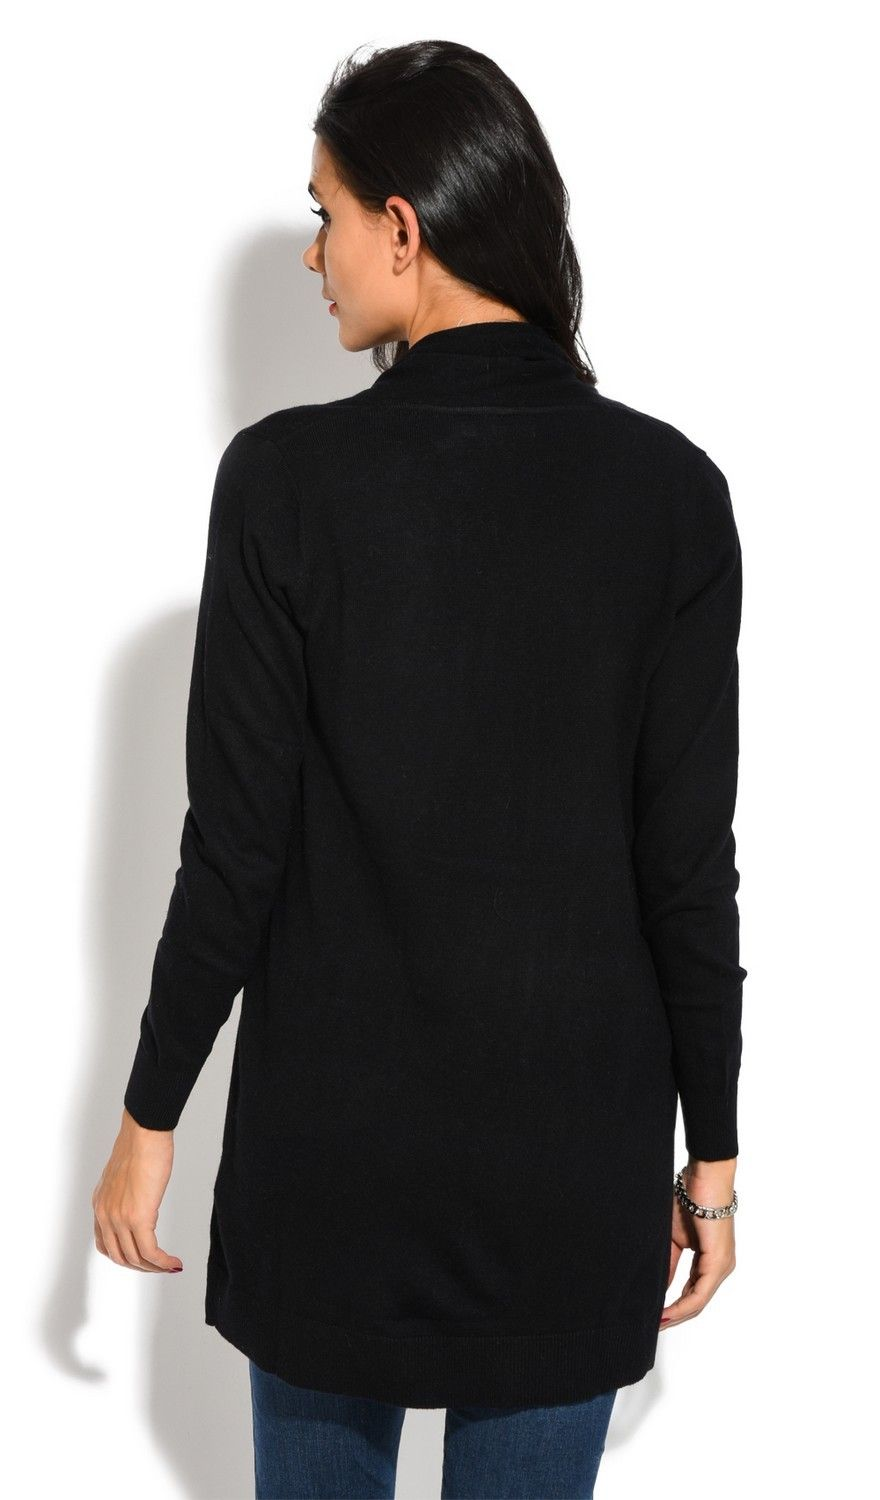 Assuili Longline Long Sleeve Cardigan with Pockets in Black